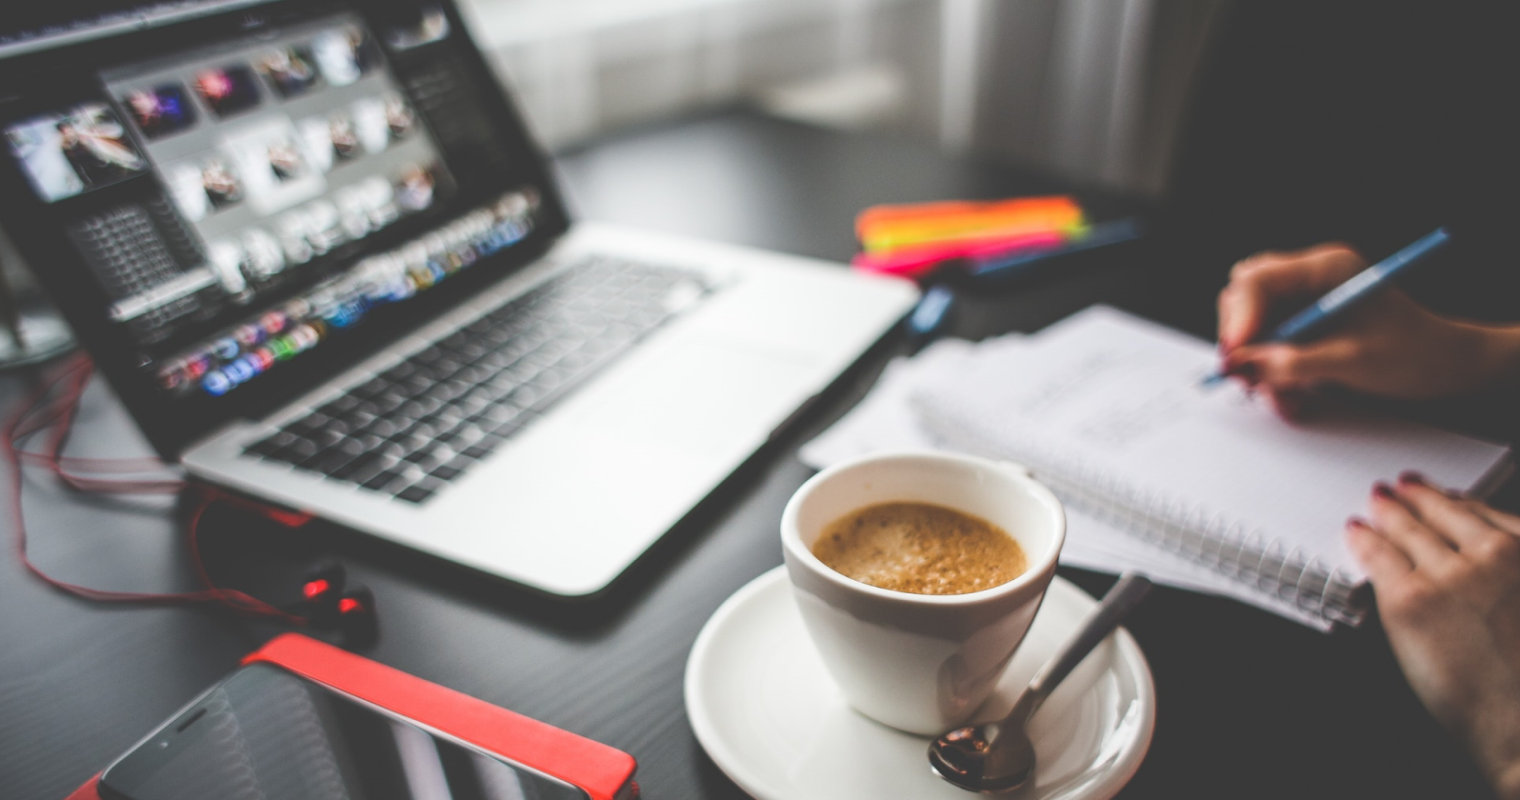 How to Get More Done: 9 Tips to Maximize Marketing Productivity